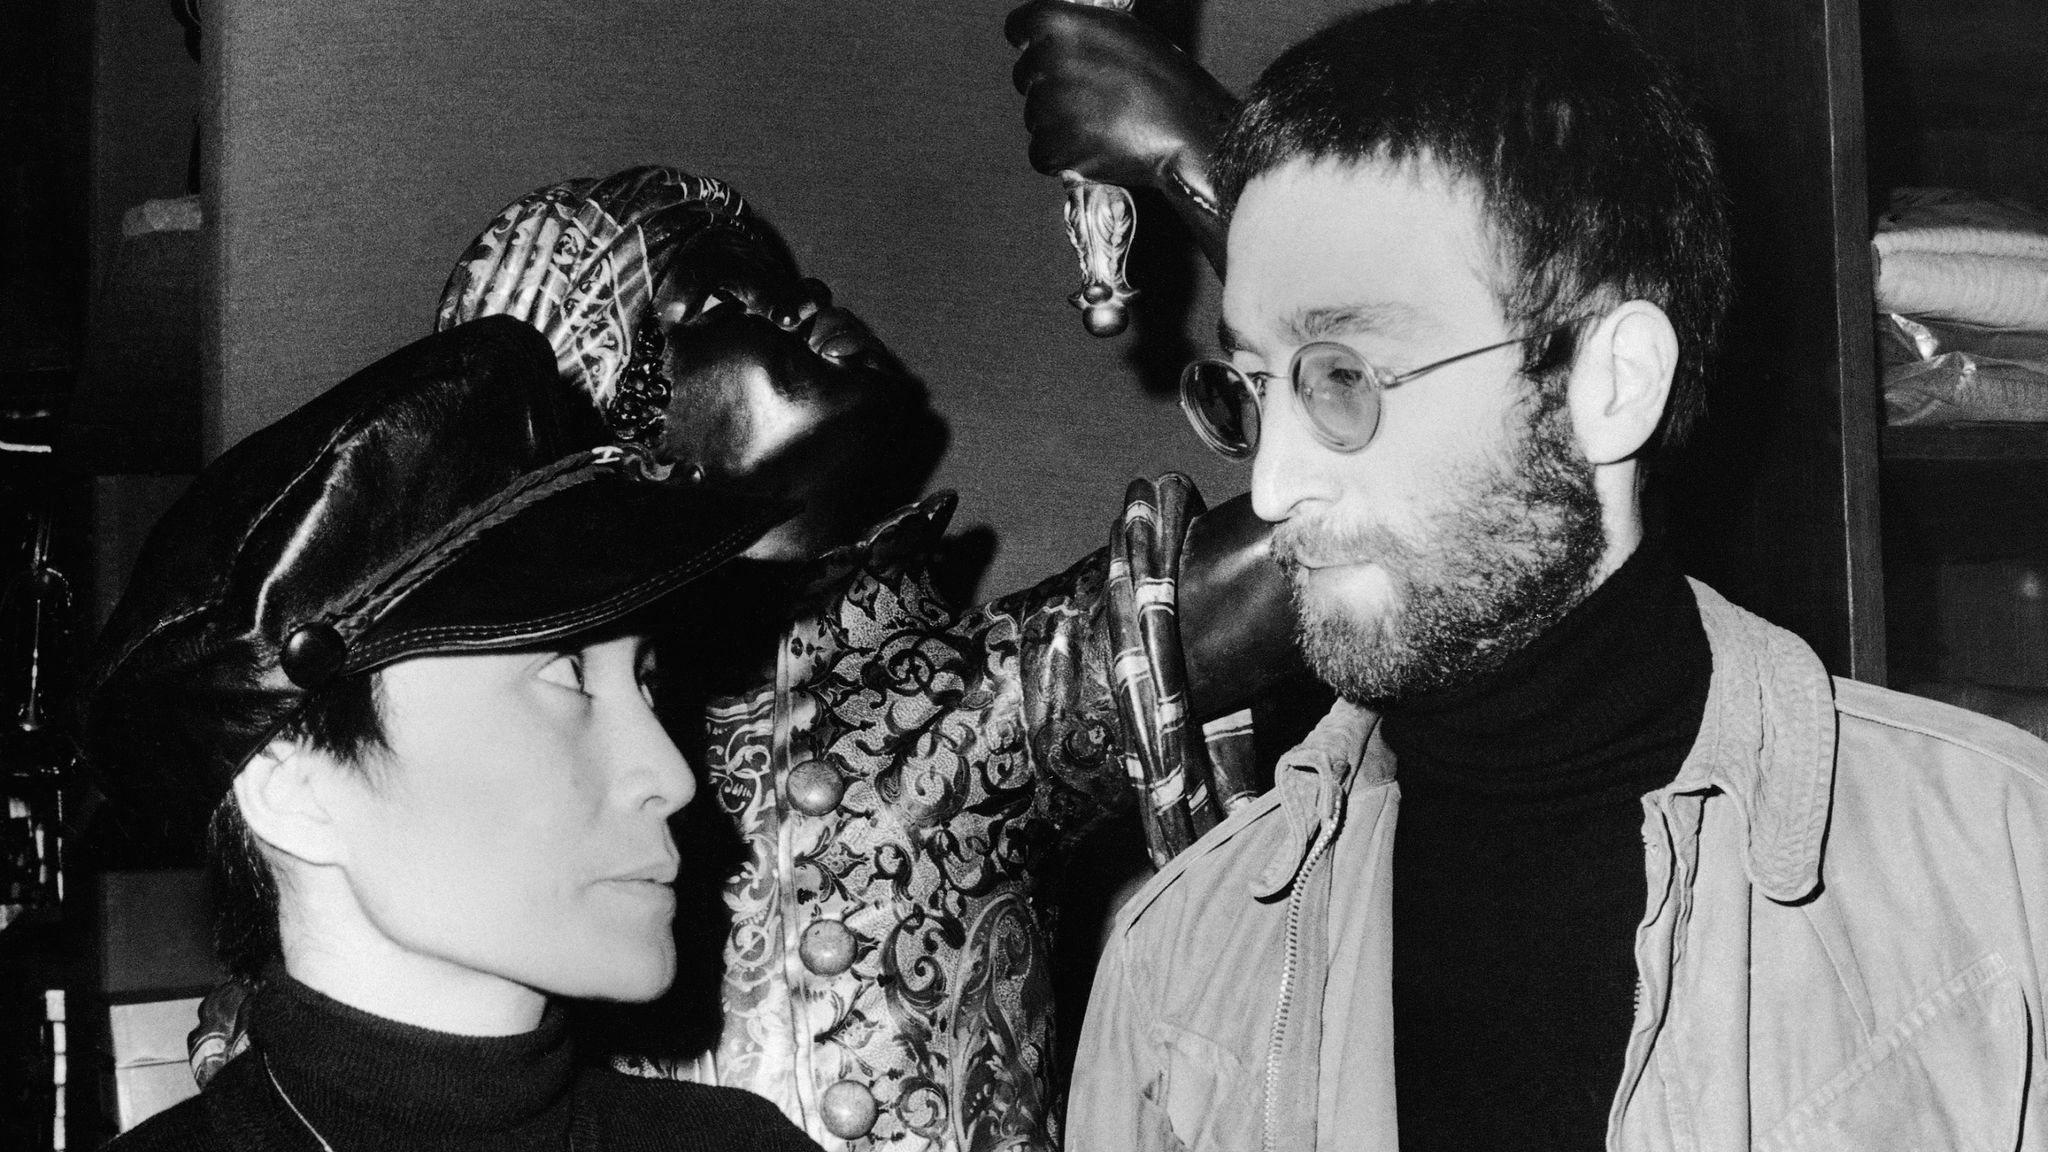 Beatle John Lennon and his wife Yoko Ono arrived in Paris coming from Denmark on January 26, 1970. The Lennons stop at Pierre Cardin's boutique where they did some shopping. (AP Photo)